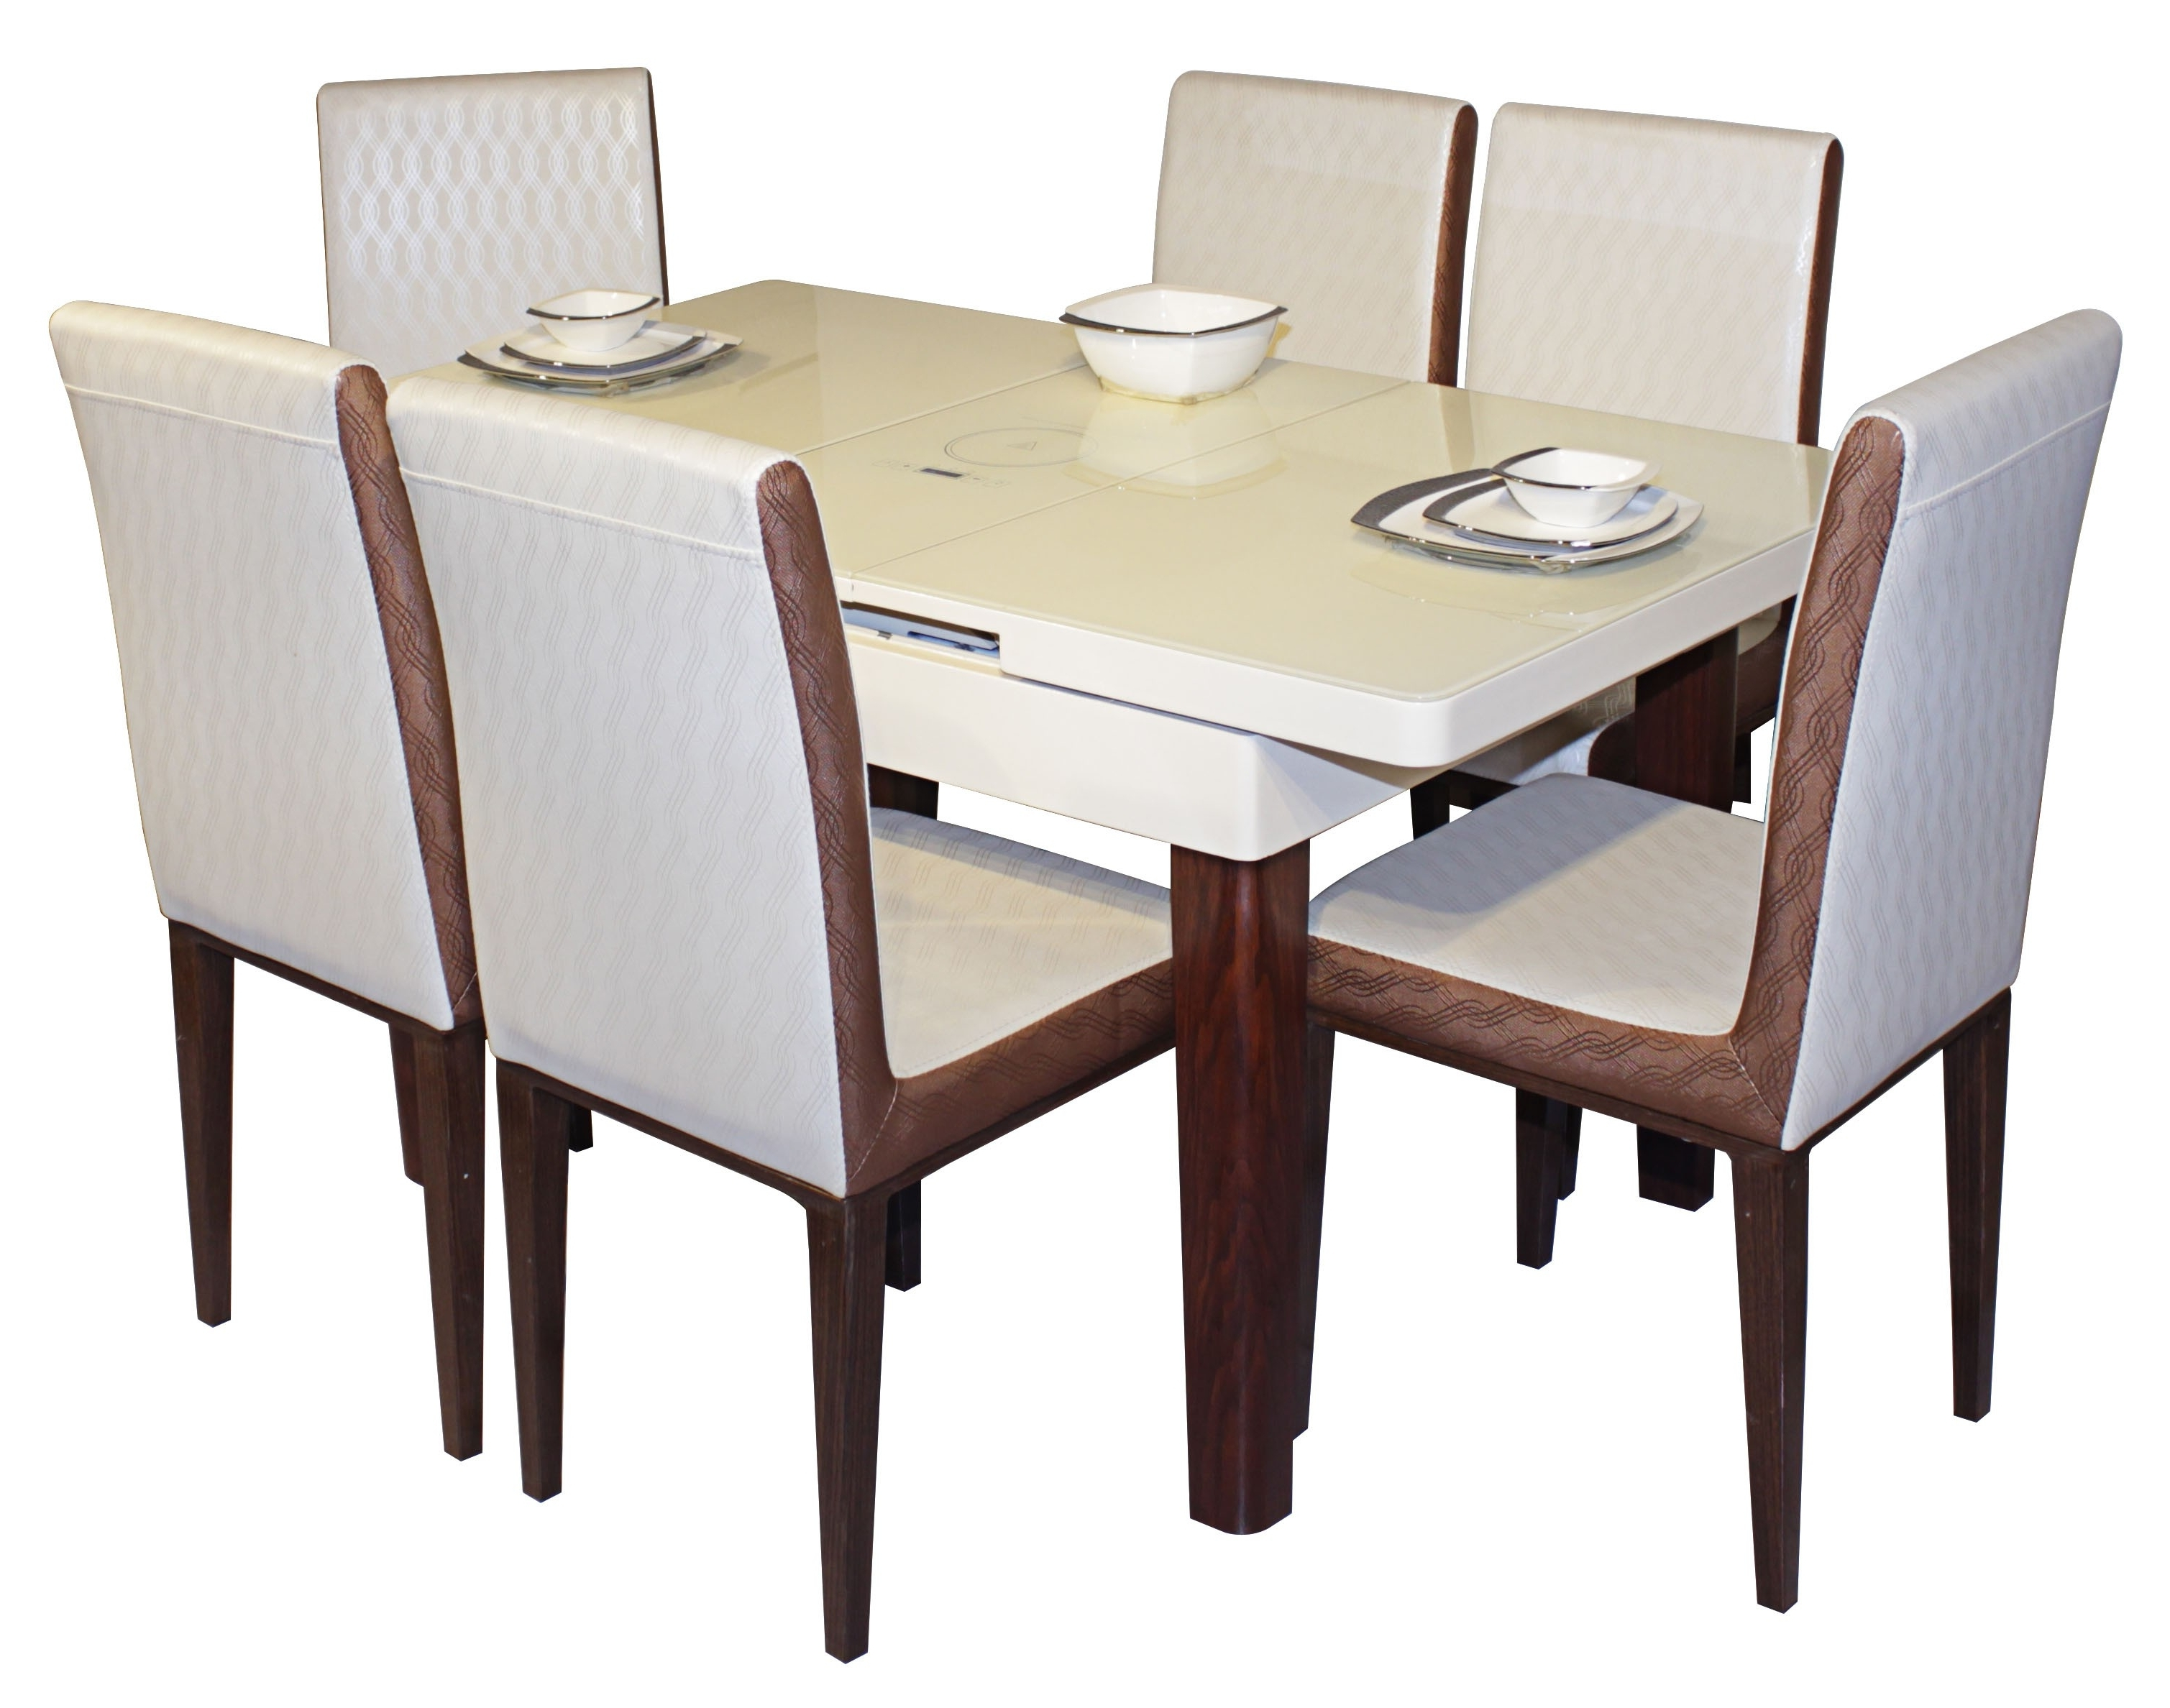 Widely Used 6 Seater Dining Tables With Galassia 6 Seater Dining Table Set (View 25 of 25)